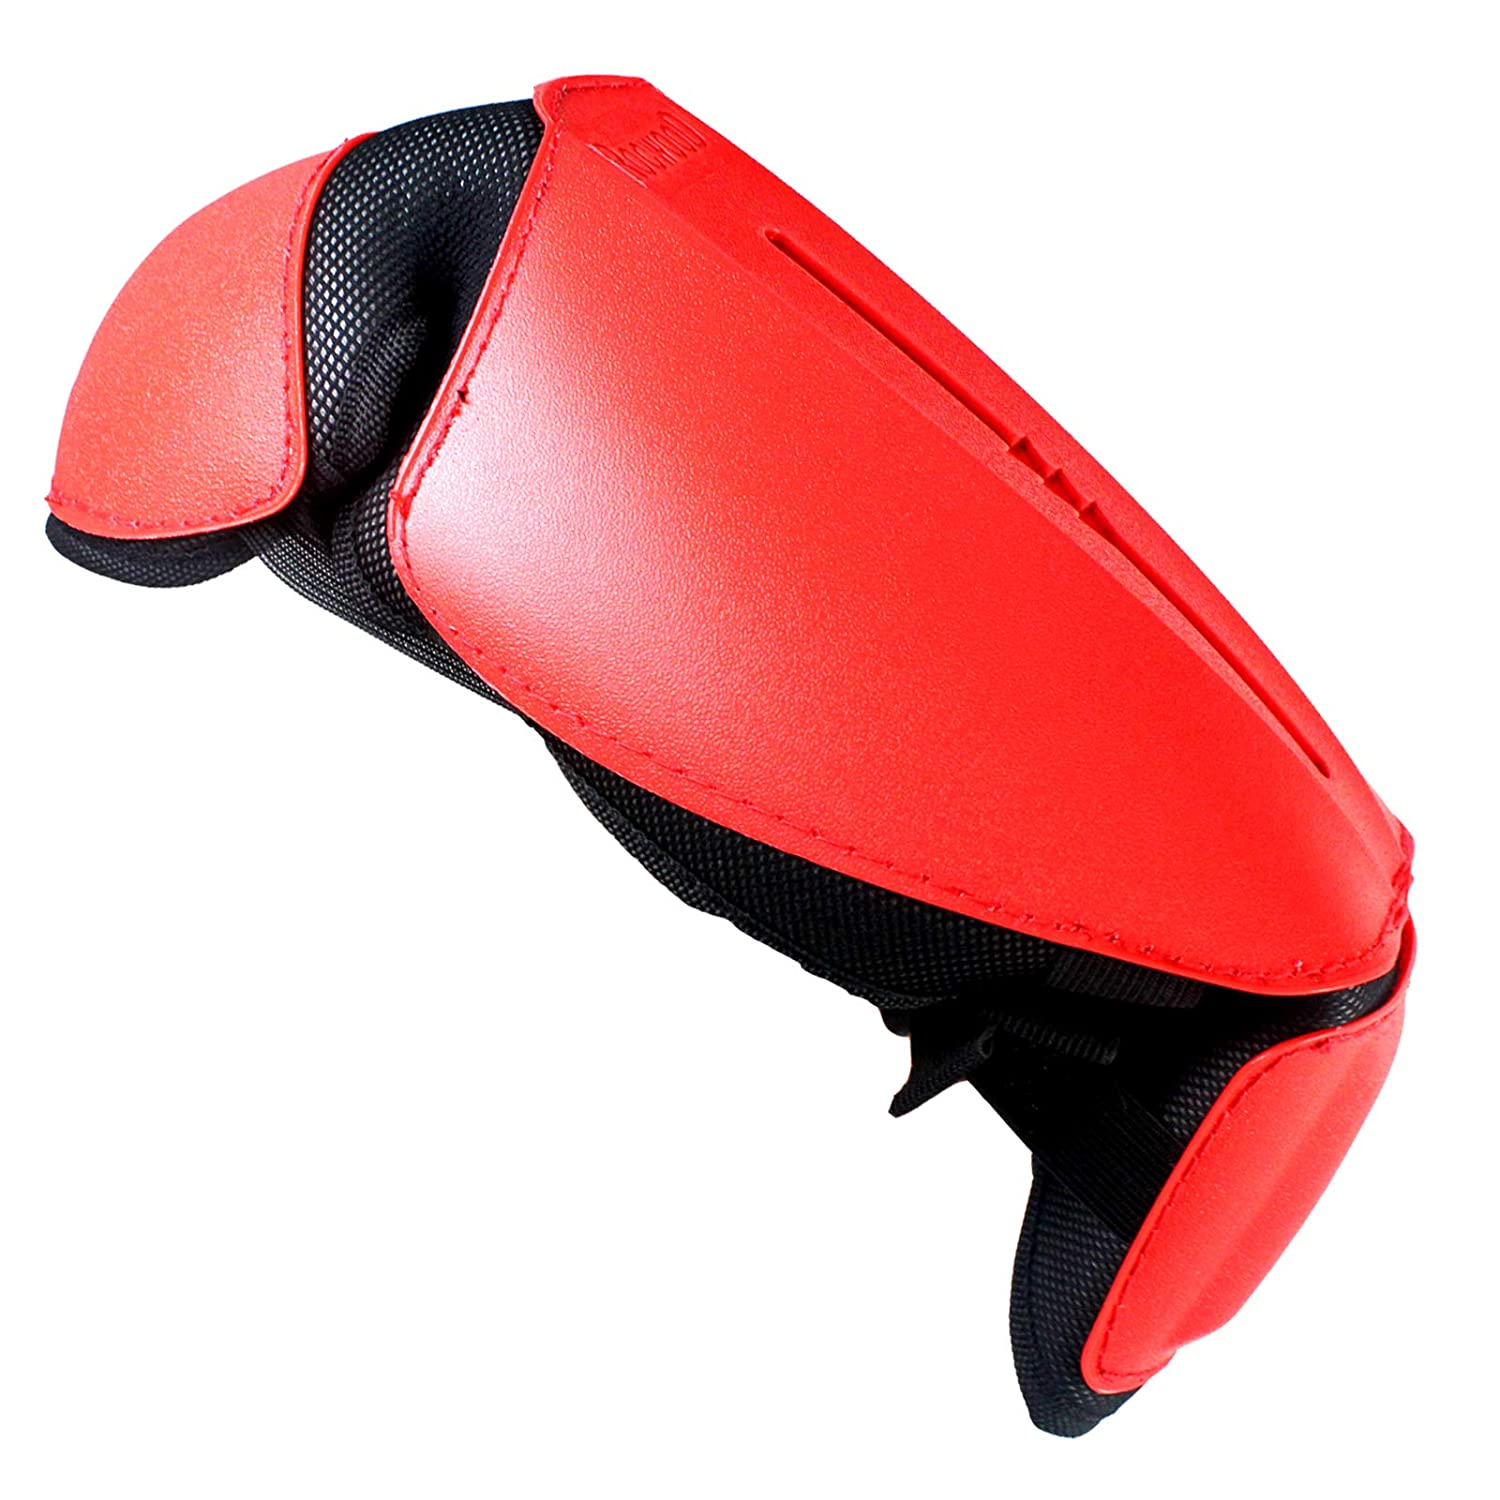 One Size, Red SPARES2GO Knee /& Shin Guards for Chainsaw